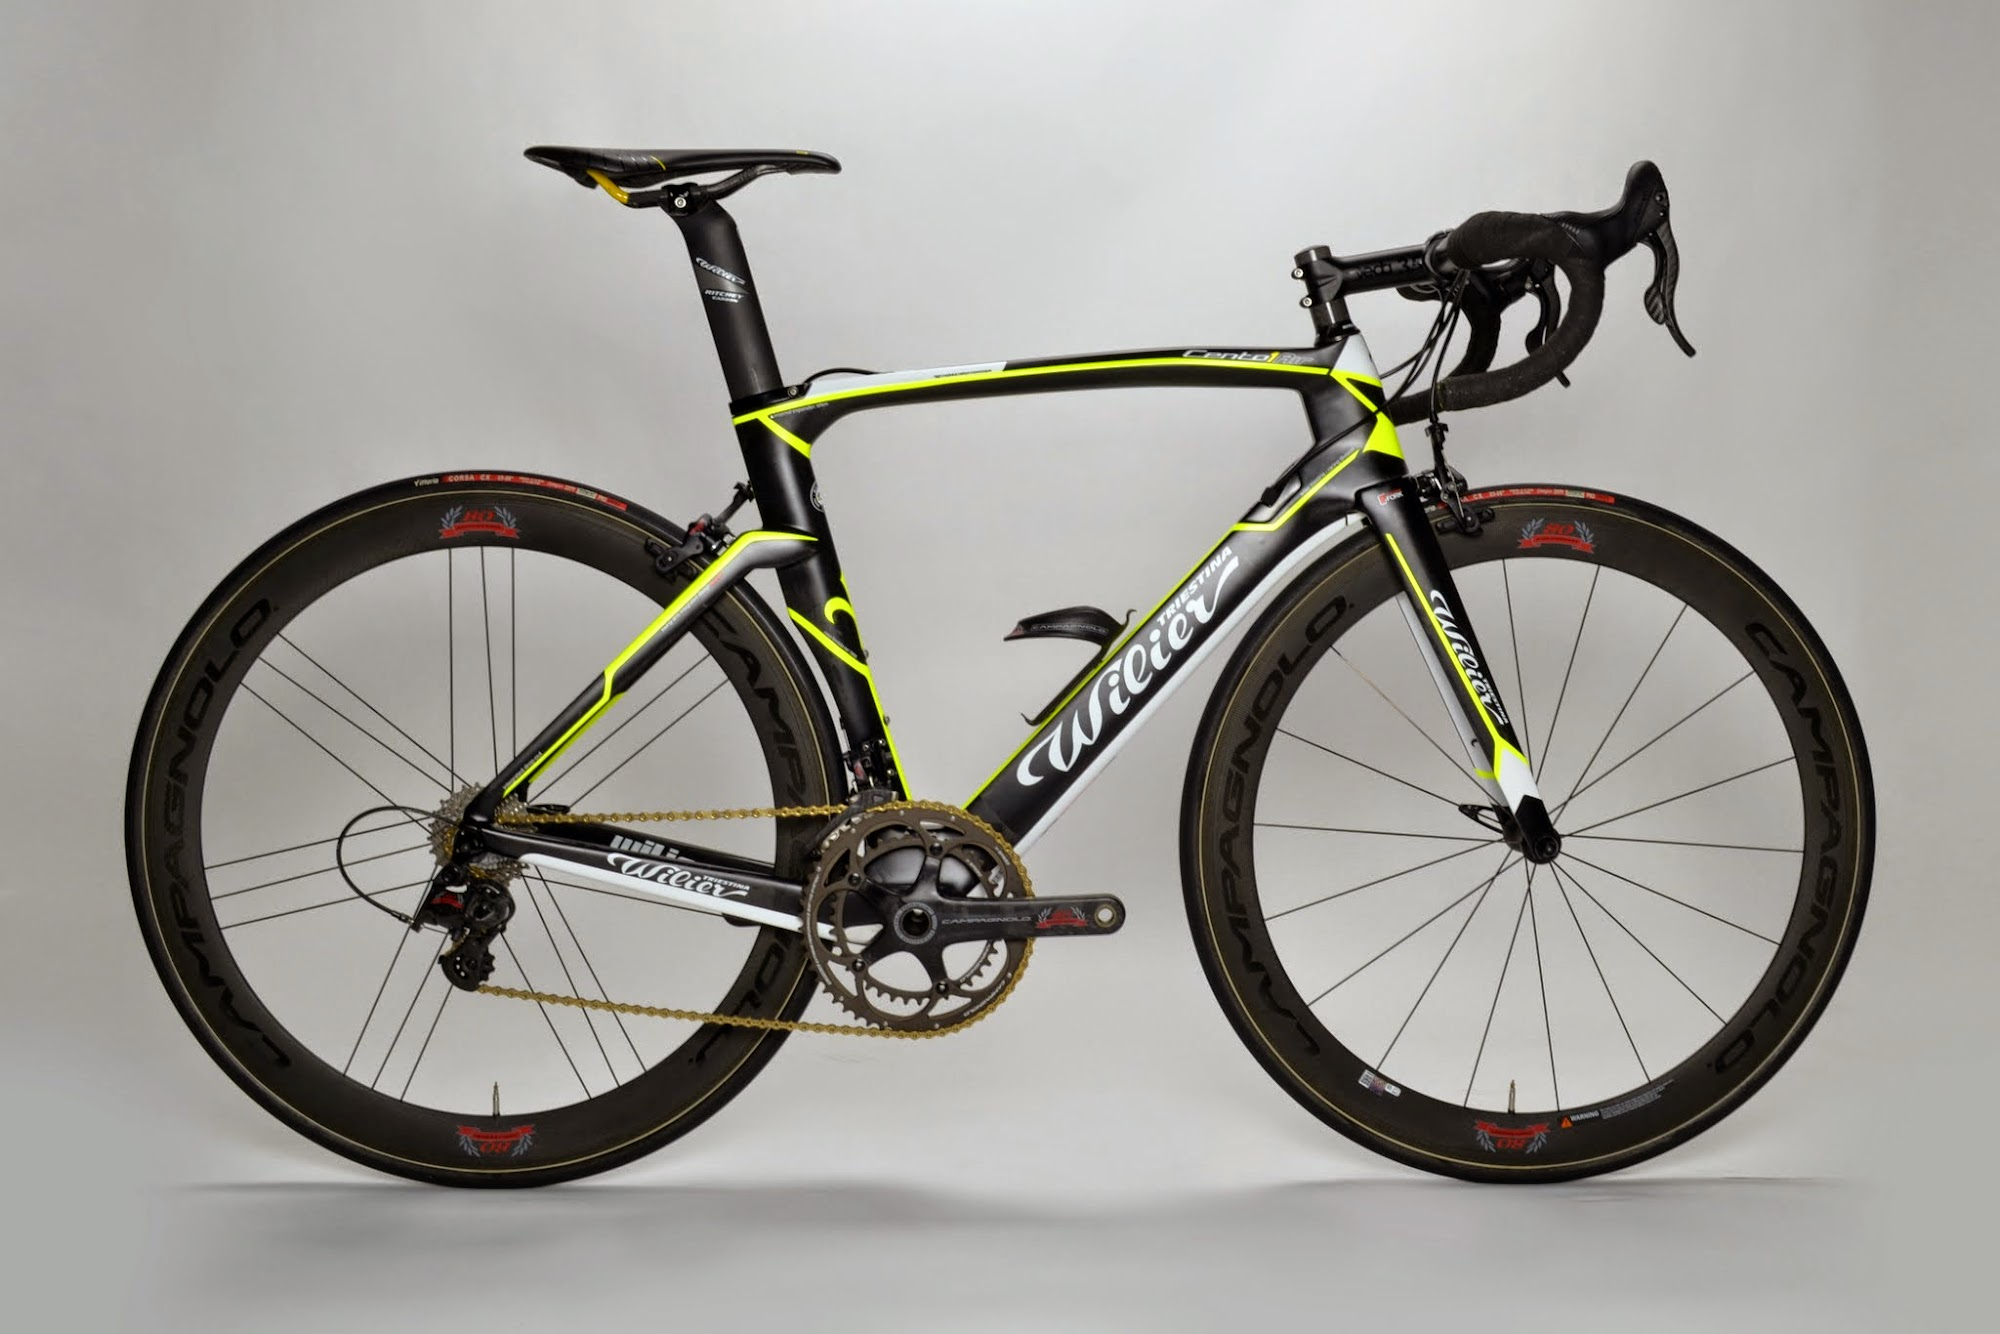 176fc506a3d 2015 Wilier Triestina Cento1 Air Campagnolo Super Record 80th Anniversary  Complete Bike at twohubs.com